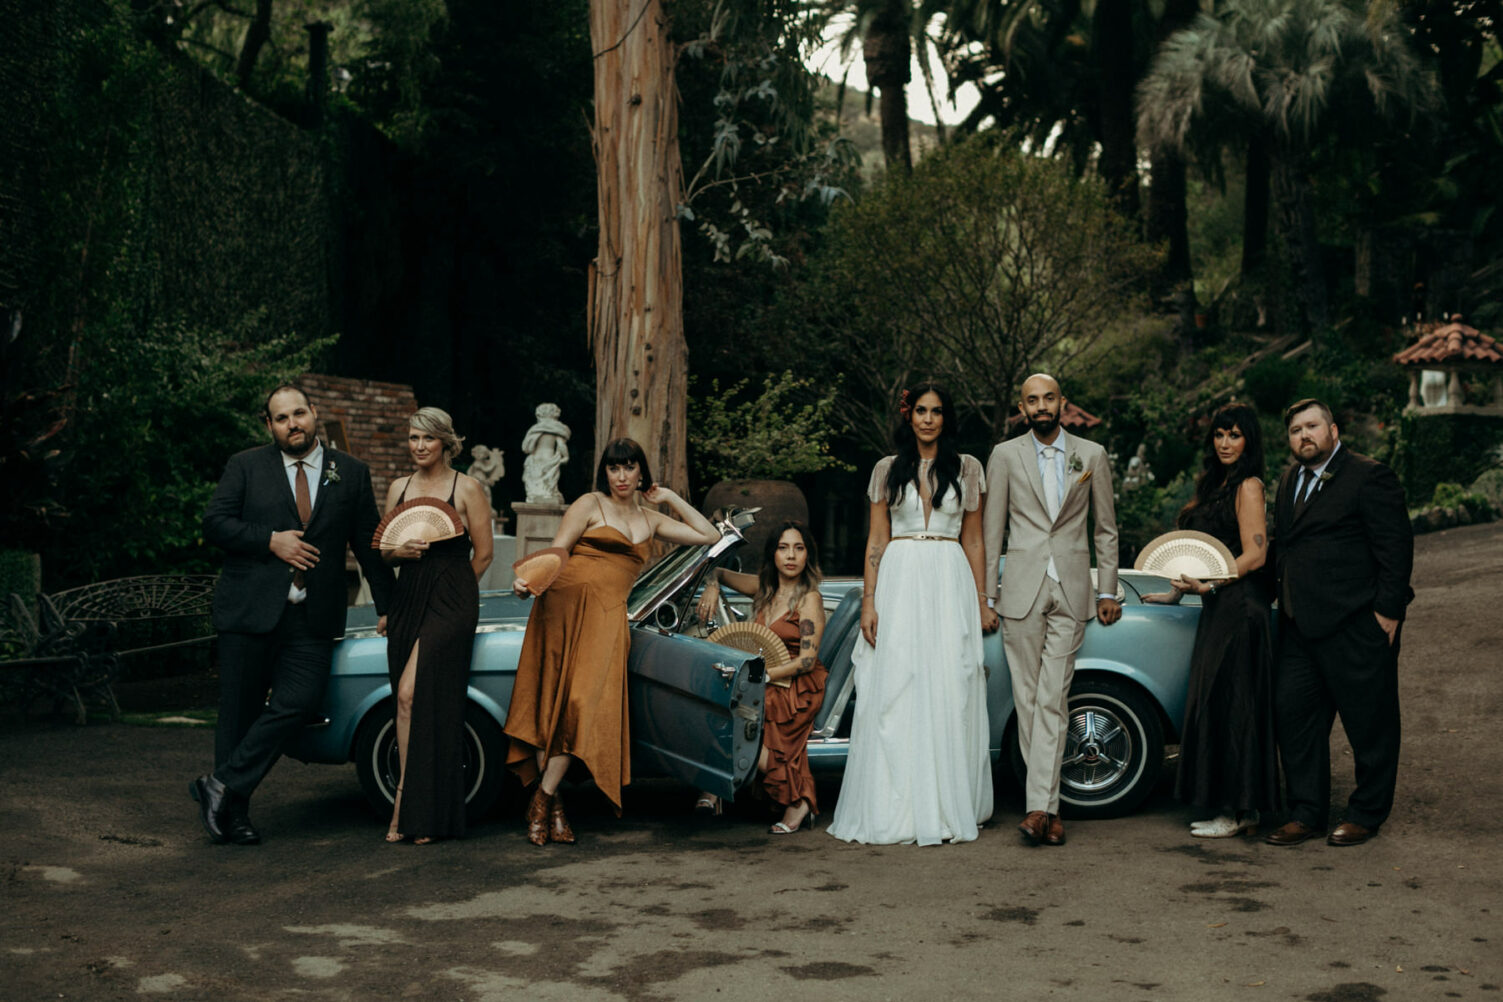 bad ass wedding party photo at houdini estate